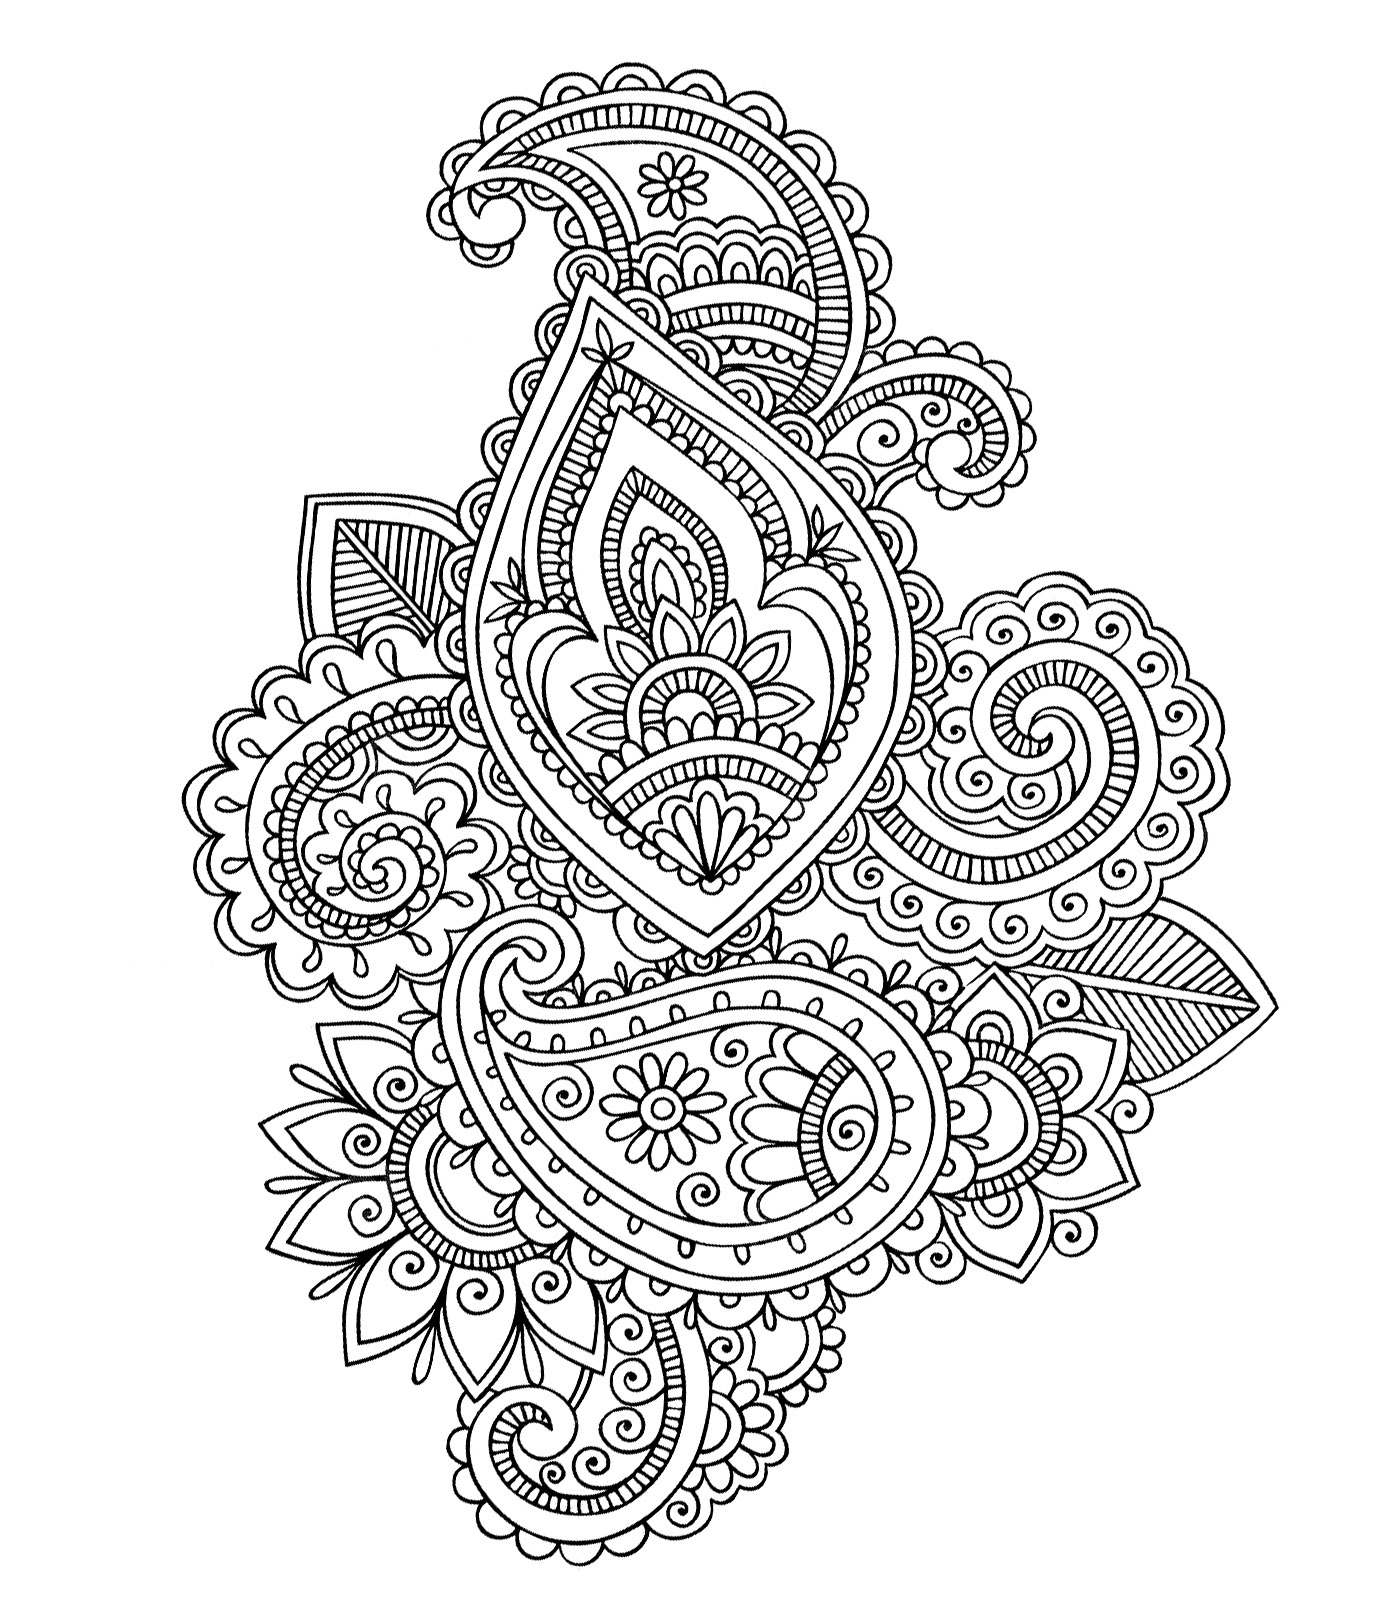 Paisley Cashemire Oriental Coloring Pages For Adults Justcolor